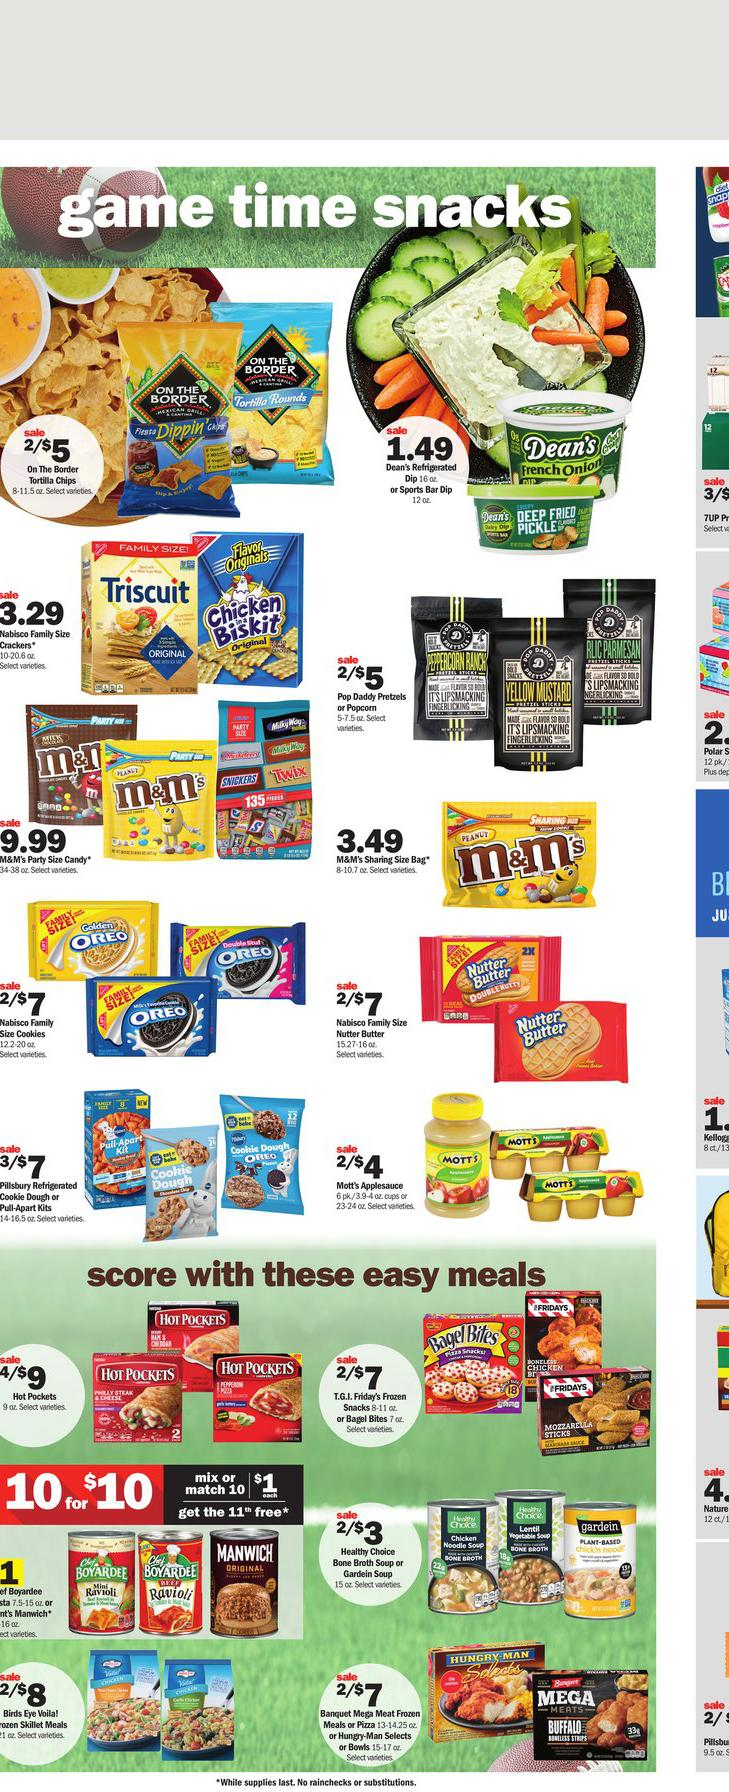 12.09.2021 Meijer ad 8. page